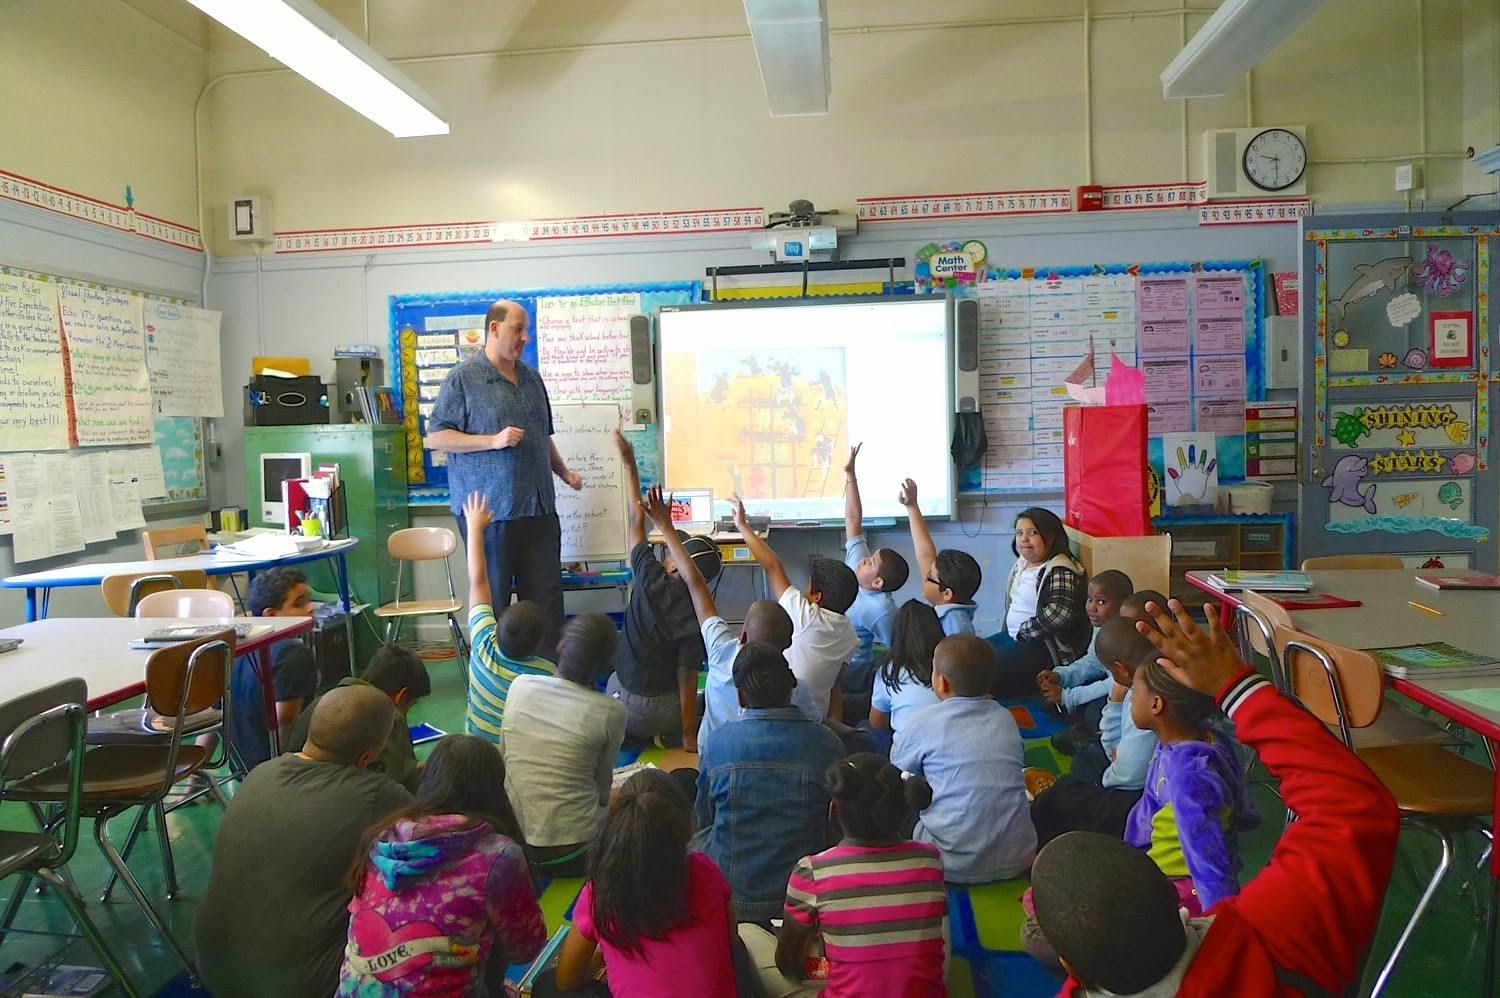 Teacher keeps students engaged during class.